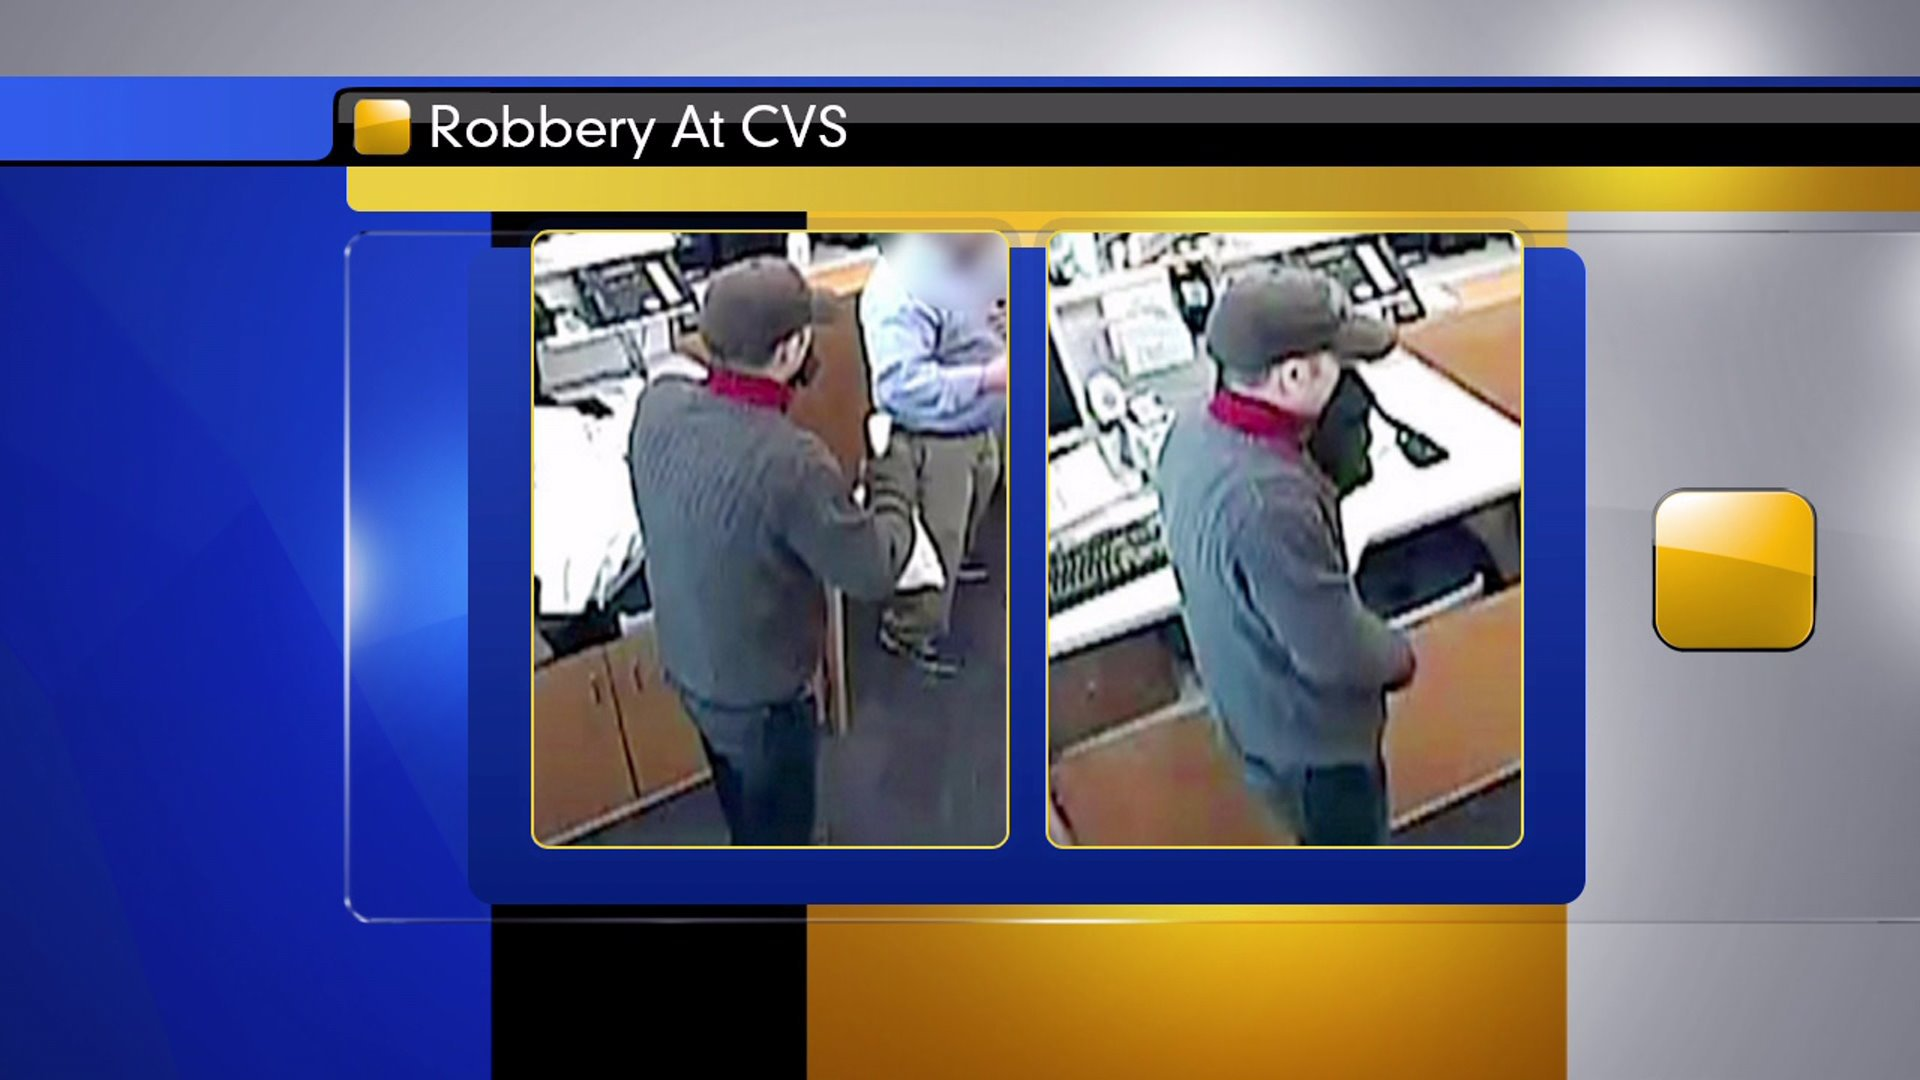 robbery-at-cvs-pics